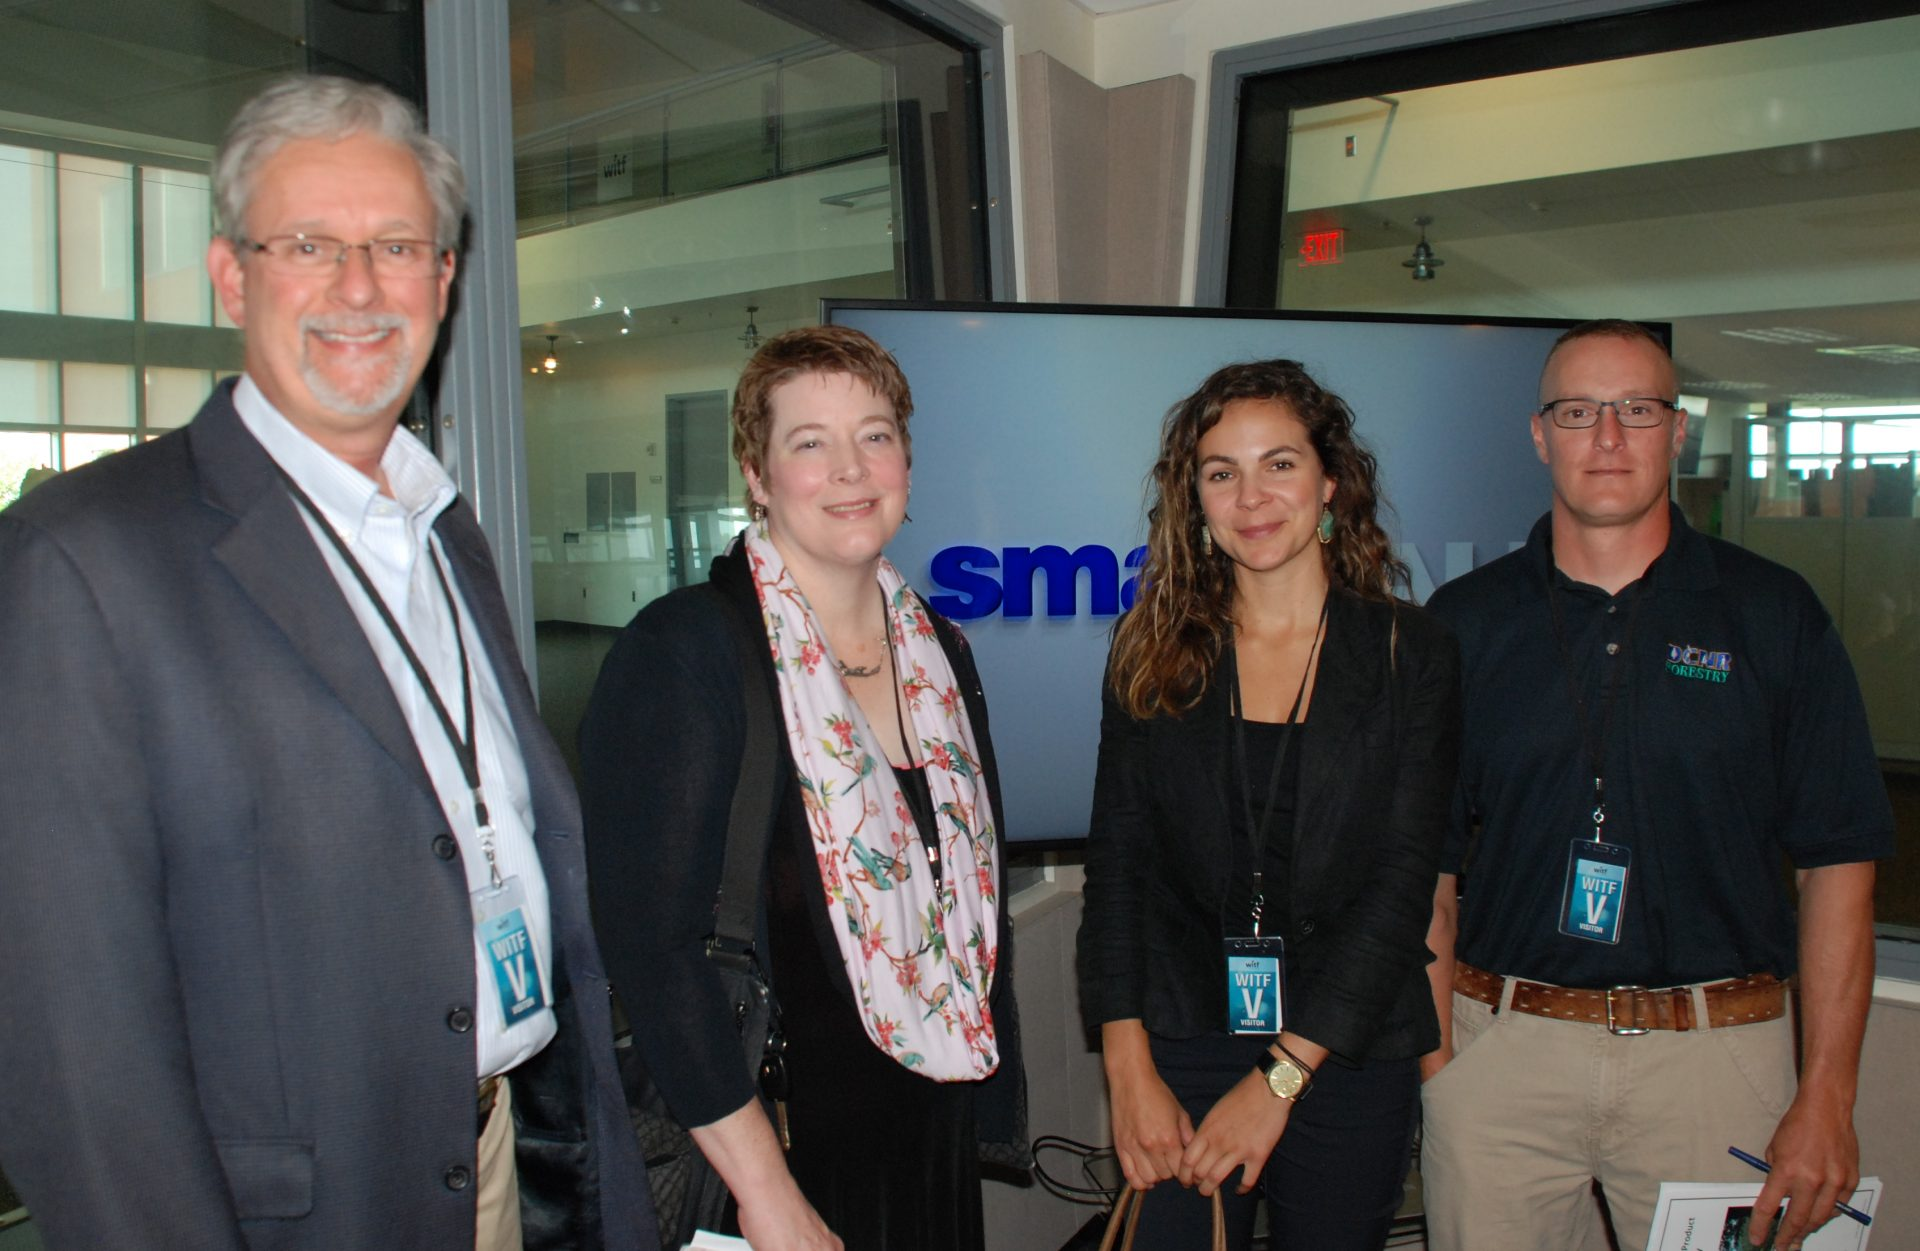 Greg Czarnecki, Rachel Reyna, Shea Zwerver, and Ben Livelsperger appear on Smart Talk, September 4, 2019.